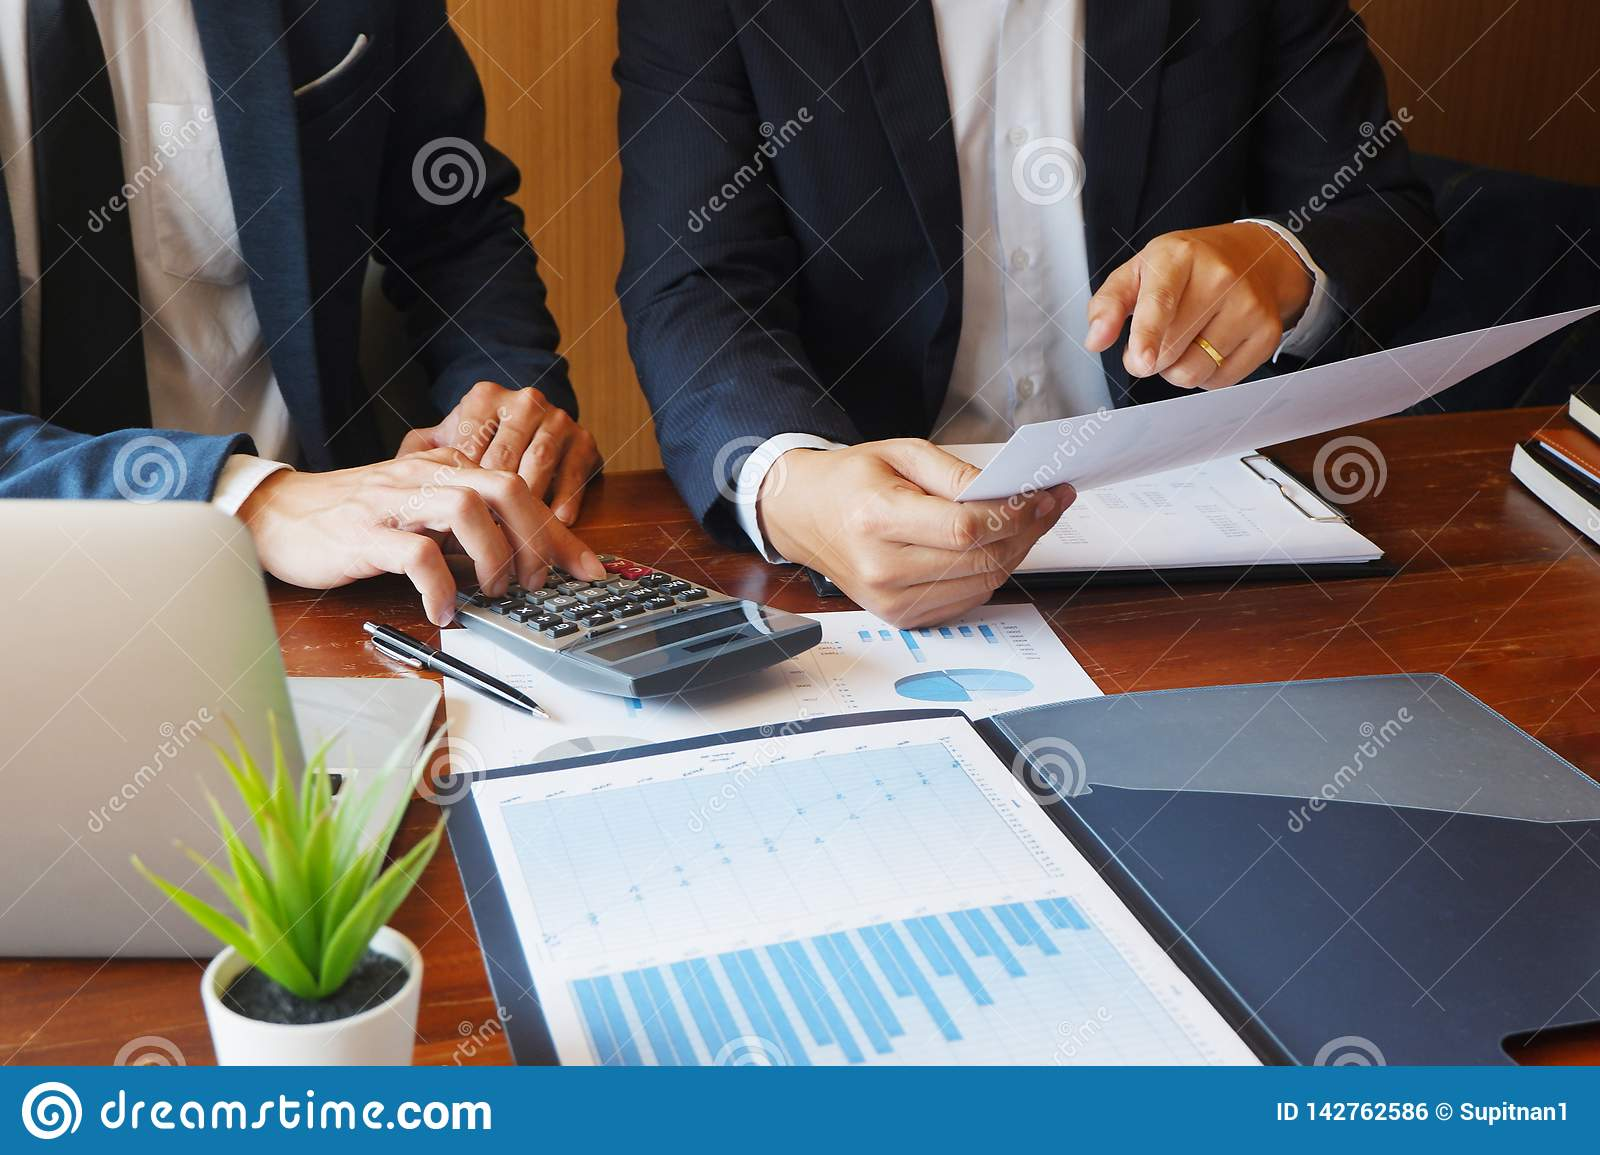 Business consulting businessman meeting brainstorming report project analyze